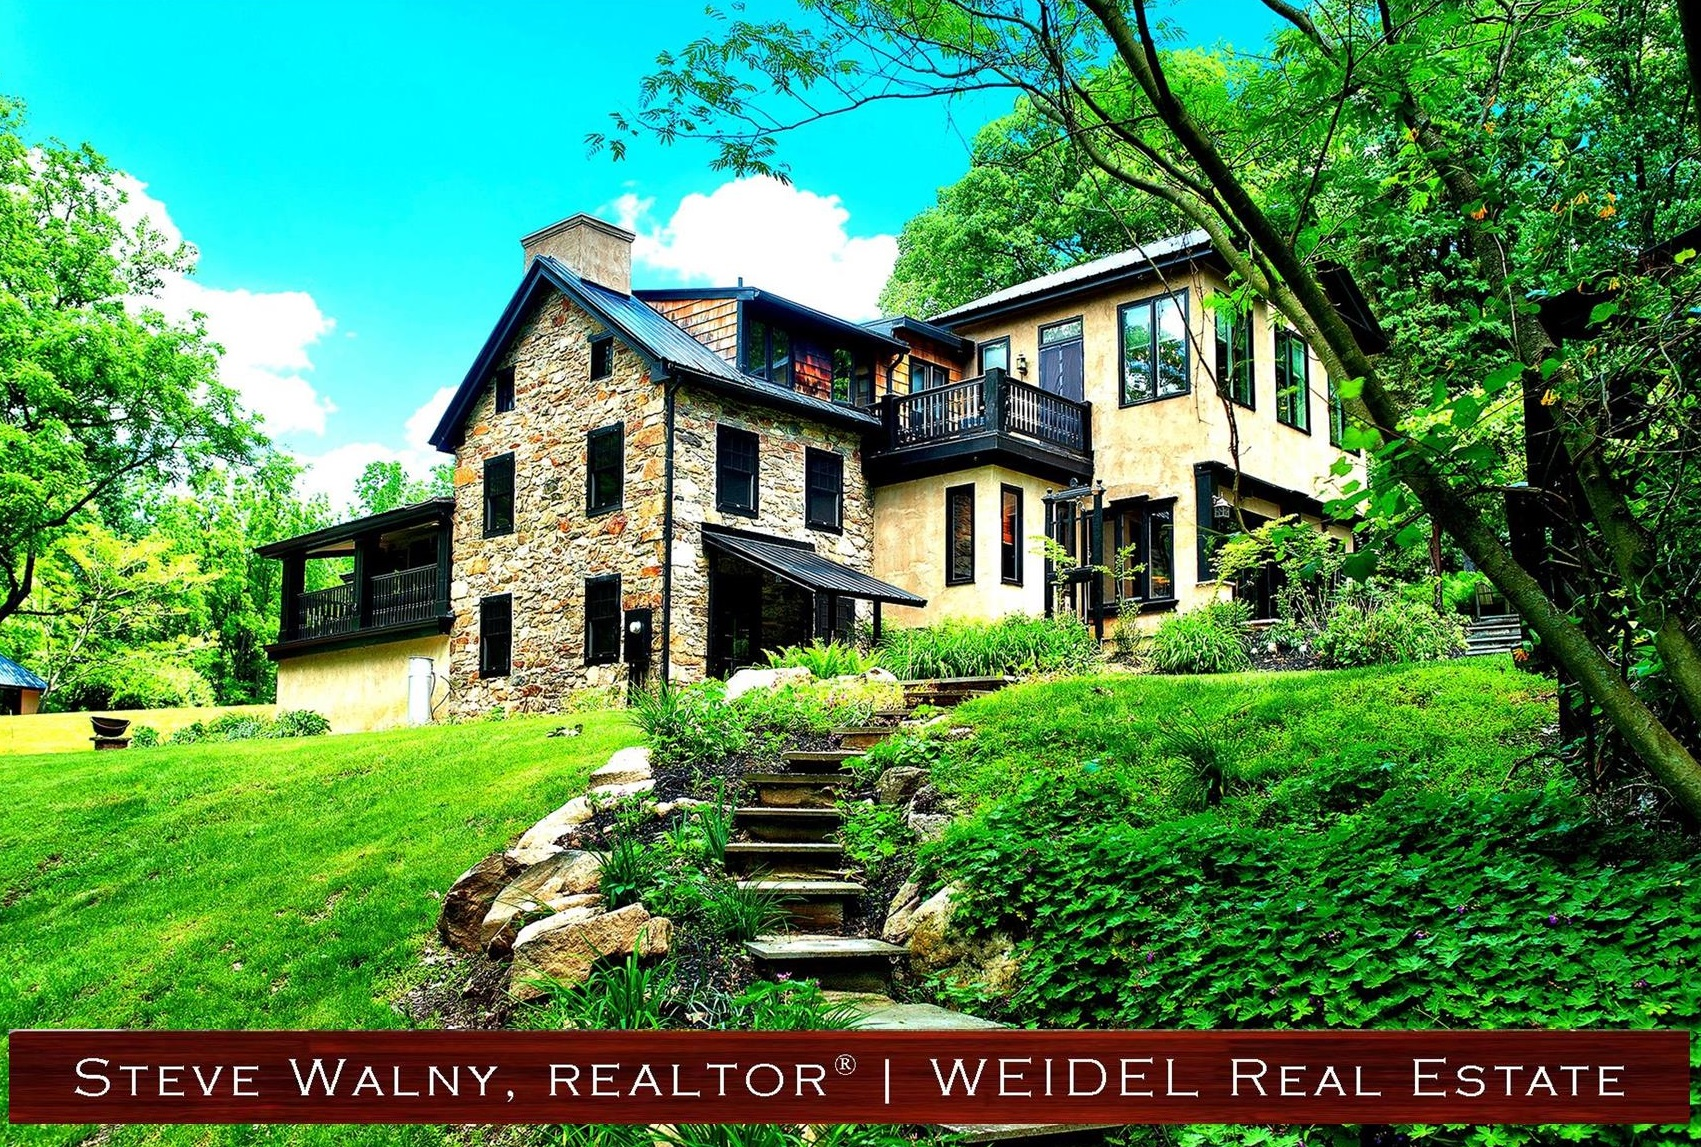 Historic Homes In Bucks | Weidel | New Hope Realtor | Doylestown Realtors | #Weidel